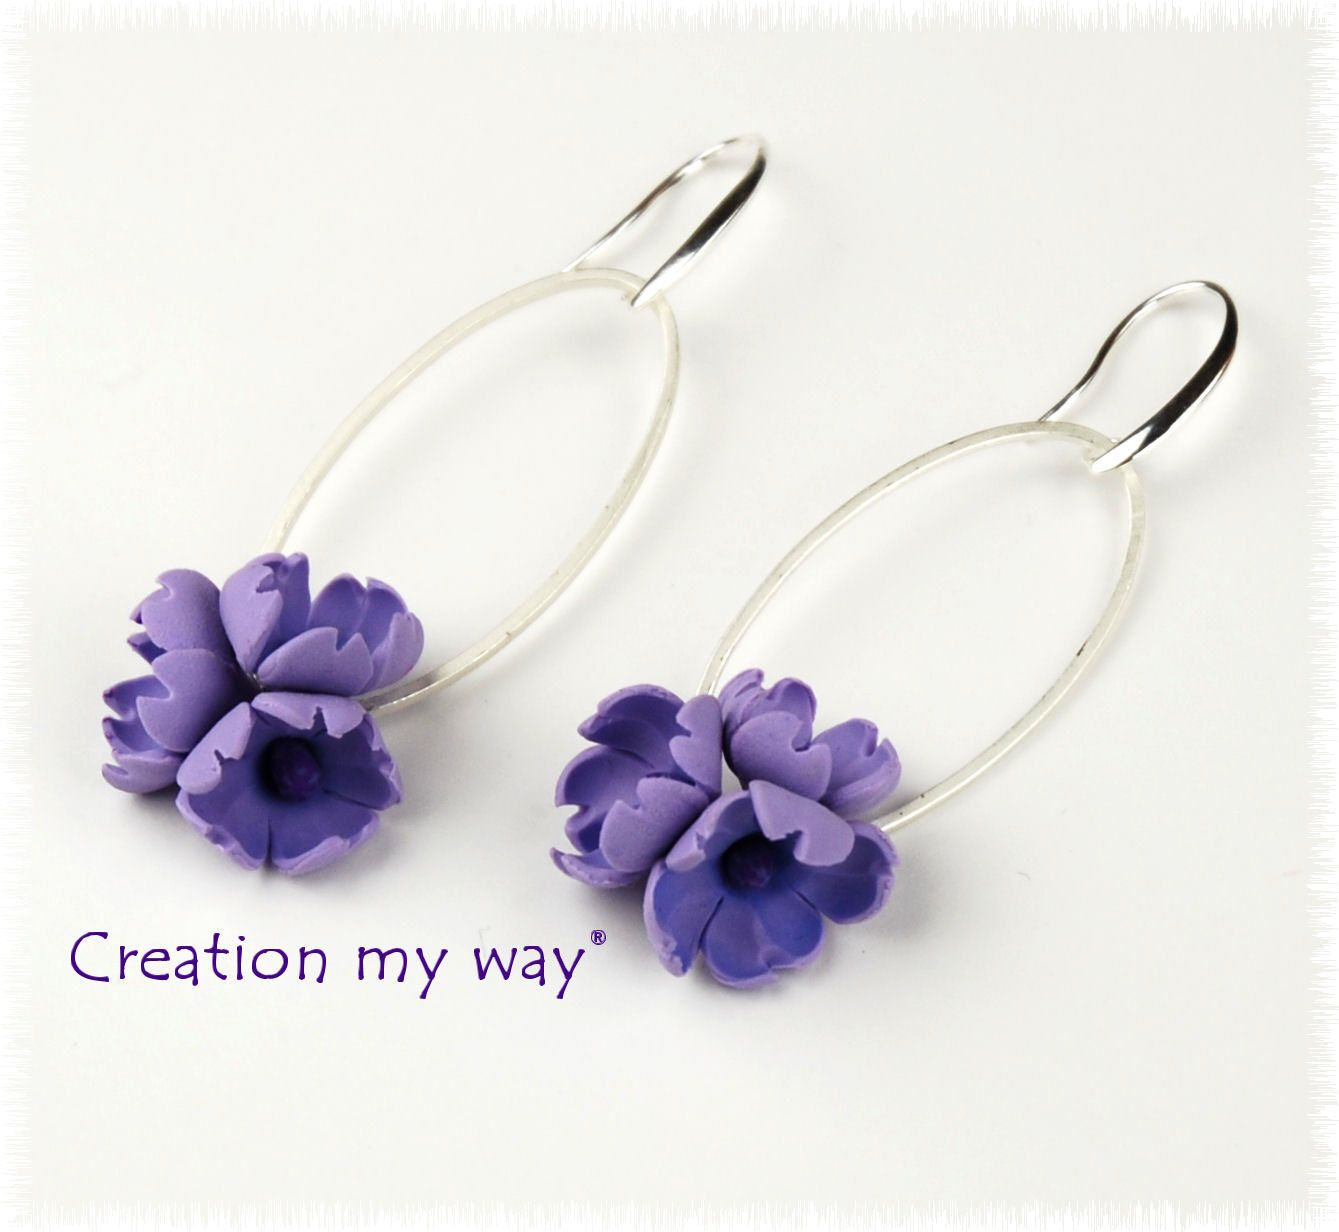 polymer clay design - by Creation my way